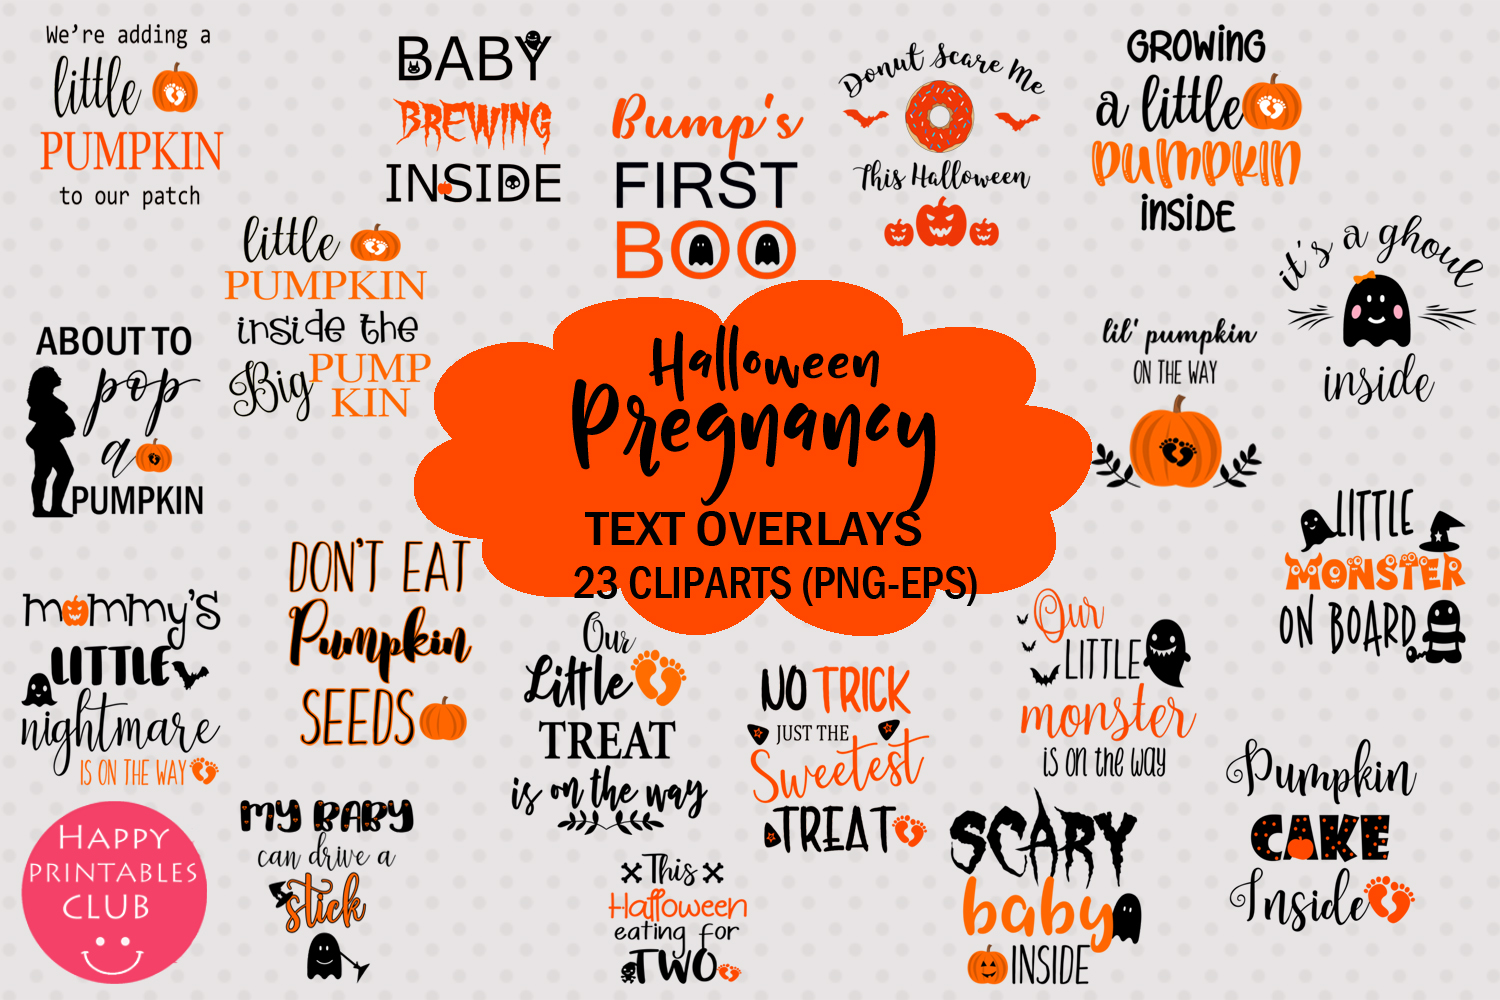 Halloween Pregnancy Announcement Text Overlays Clipart example image 1